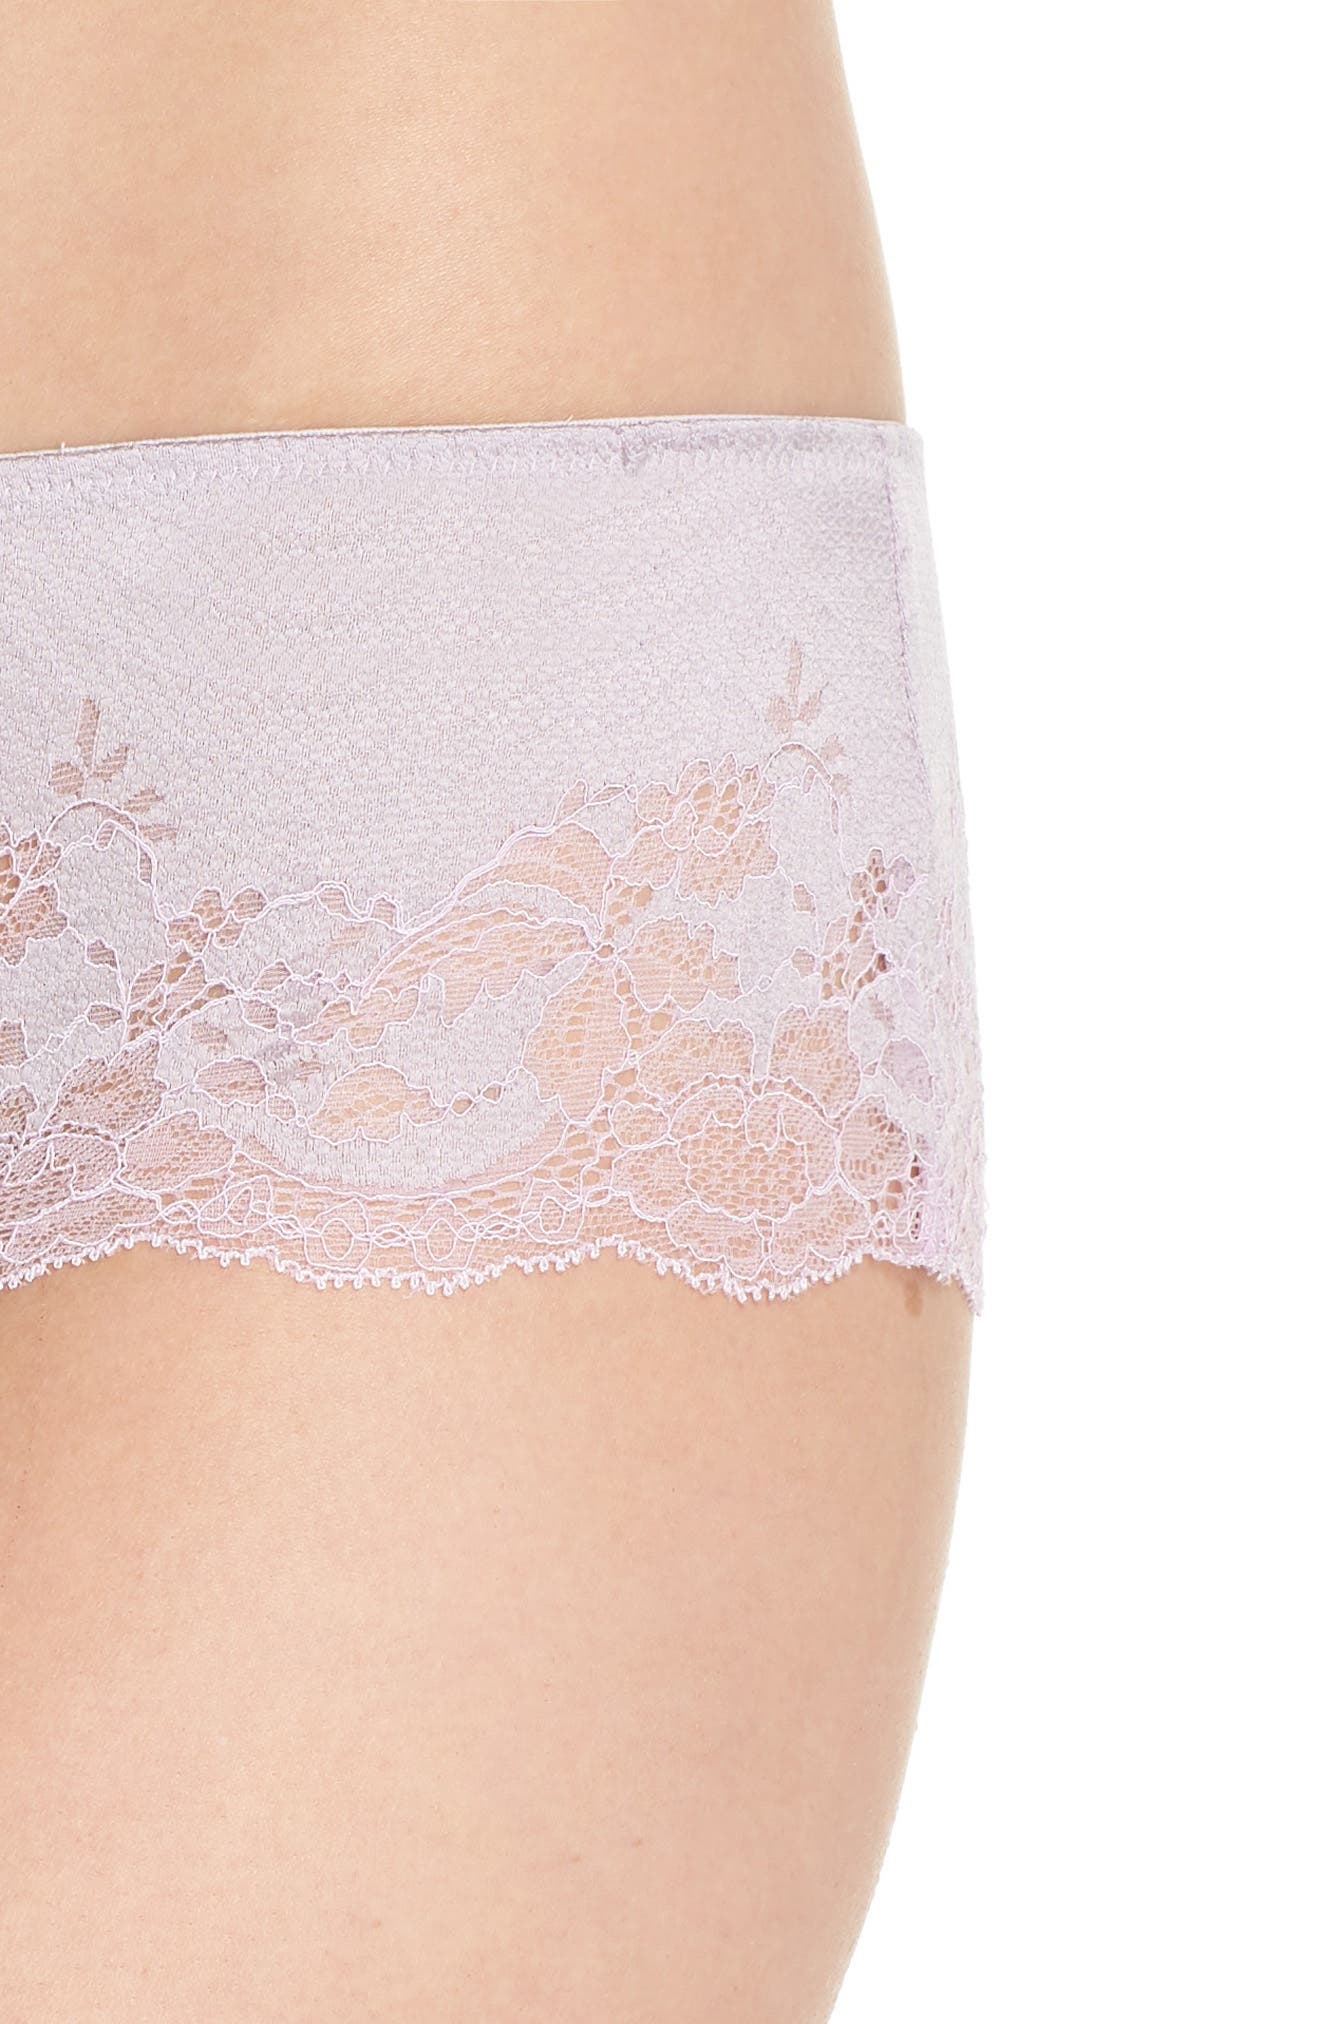 Lace Affair Tanga,                             Alternate thumbnail 4, color,                             LILAC MARBLE / PASTEL LILAC